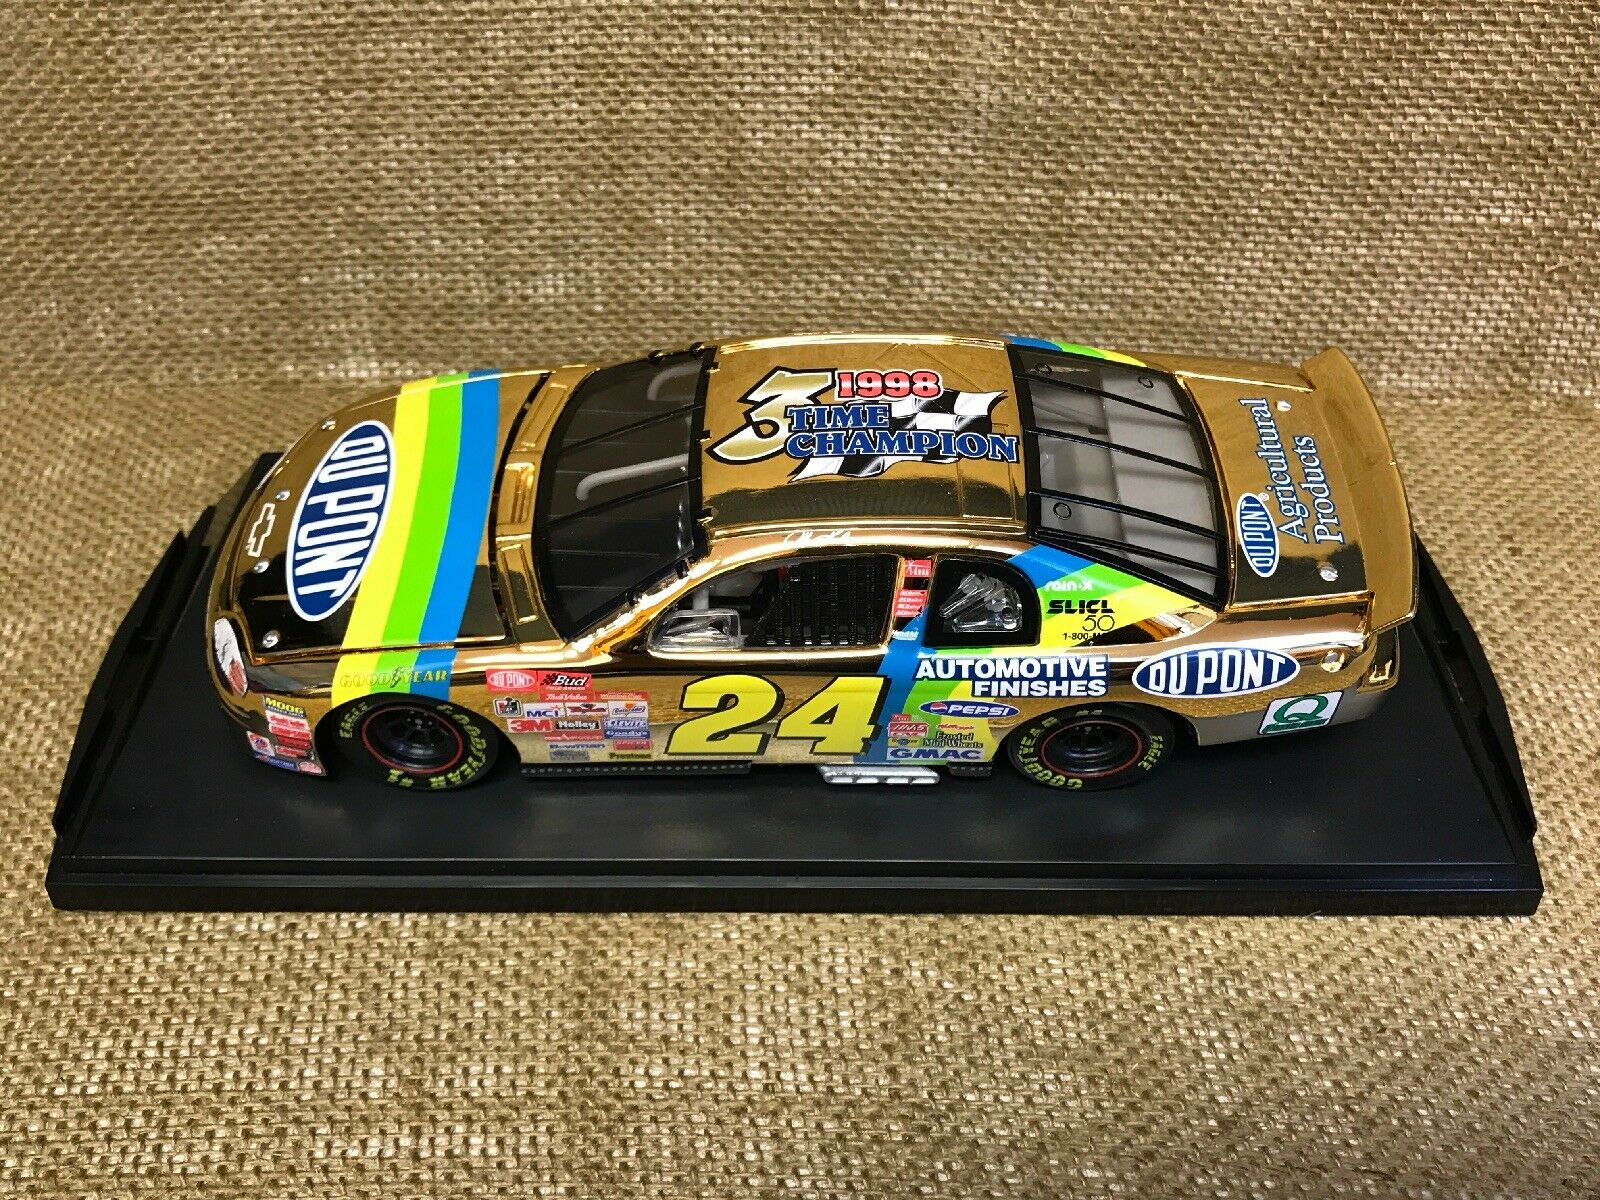 Action 1999 NASCAR Dupont 24kt. gold 3x Champ Jeff Gordon Chevy Monte Carlo